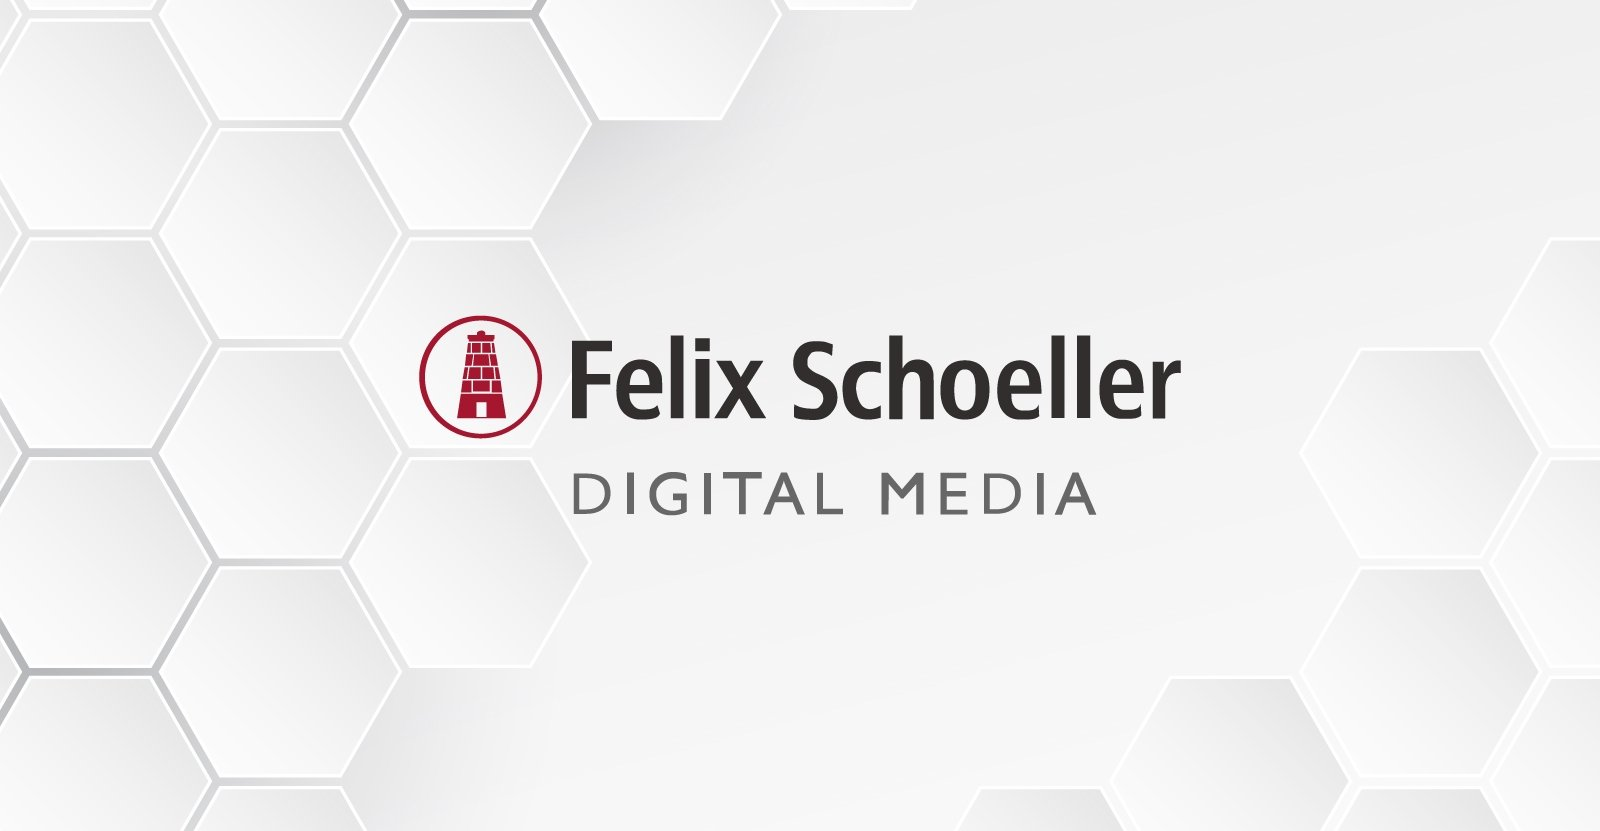 Felix Schoeller® Digital Media